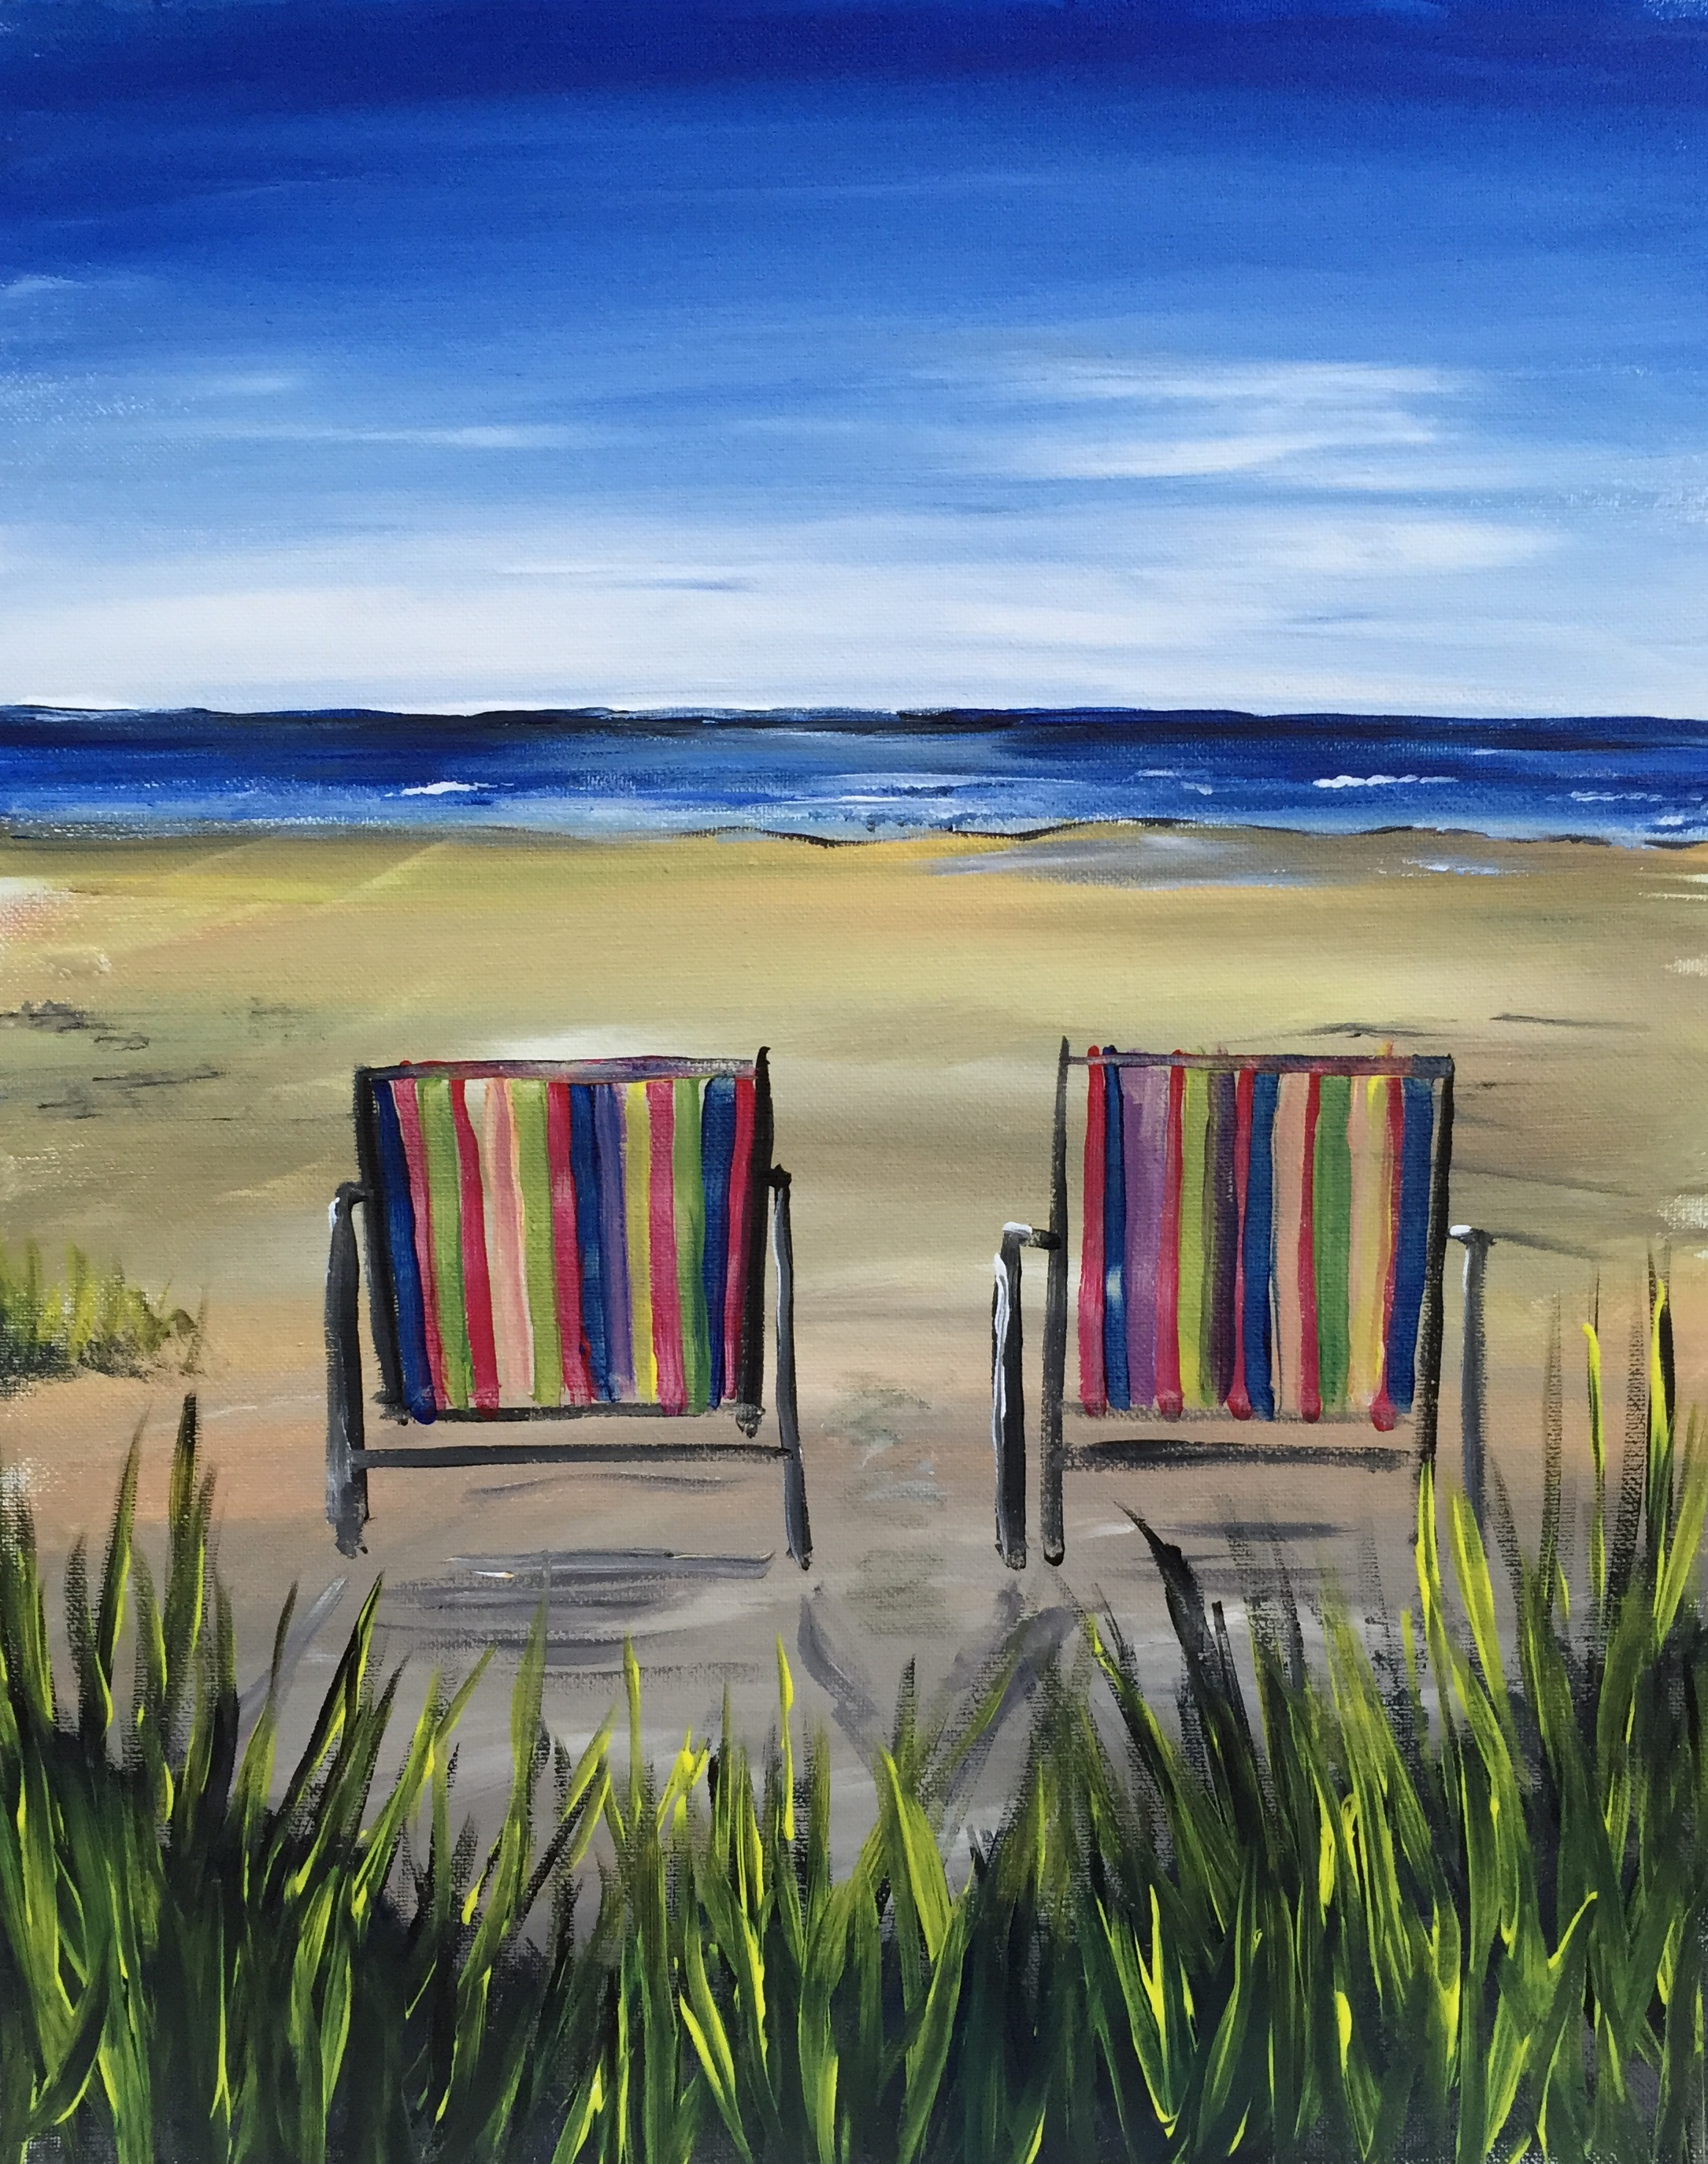 Beach chairs on the beach painting - Beach Chairs At Clubsport San Joseprivatefundraiserspecial Find This Painting